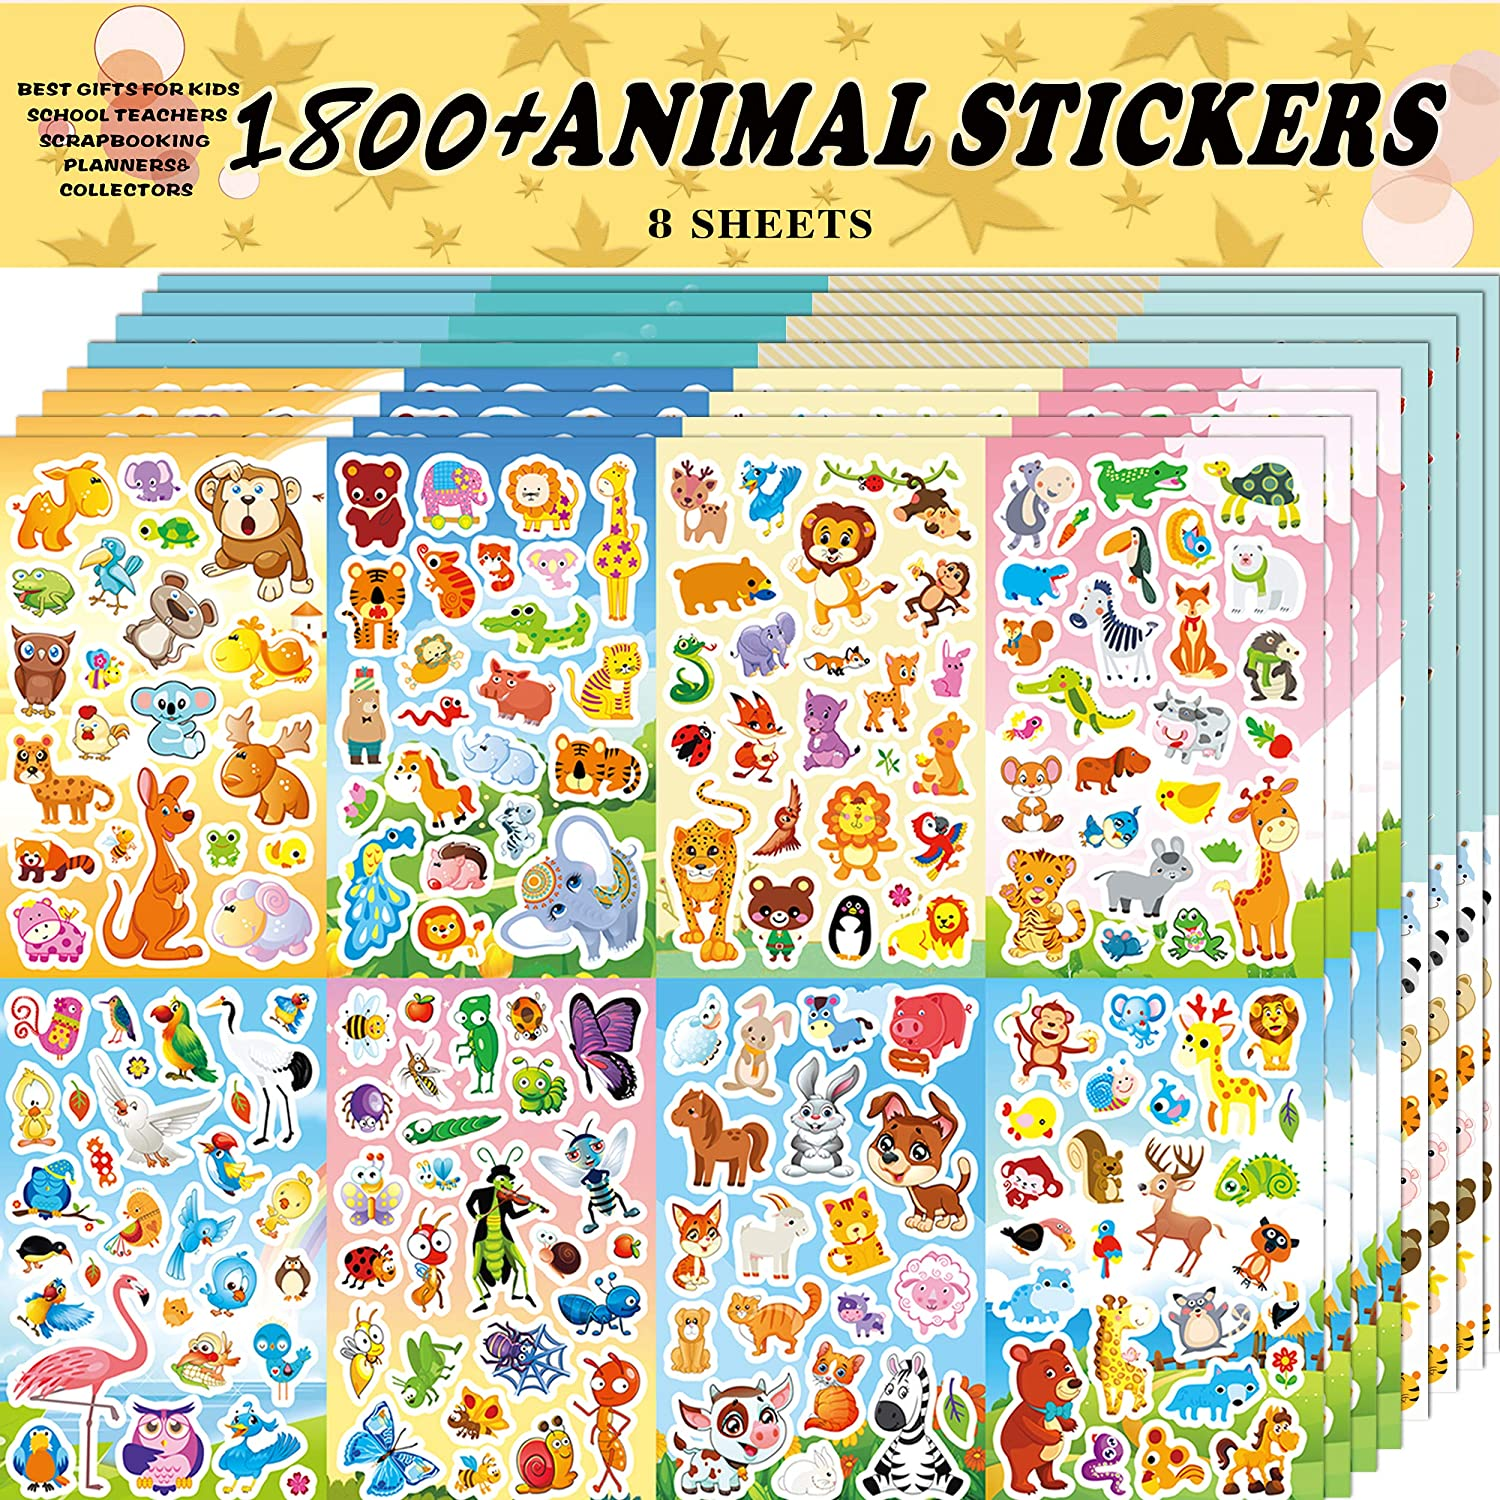 Sinceroduct Animal Stickers Assortment Set, 8 Sheets (1800+ Count), 2 Different Styles 16 Themes Collection for Kids,Children, Teacher, Parent, Grandparent, Animals of The World Sticker Variety Pack